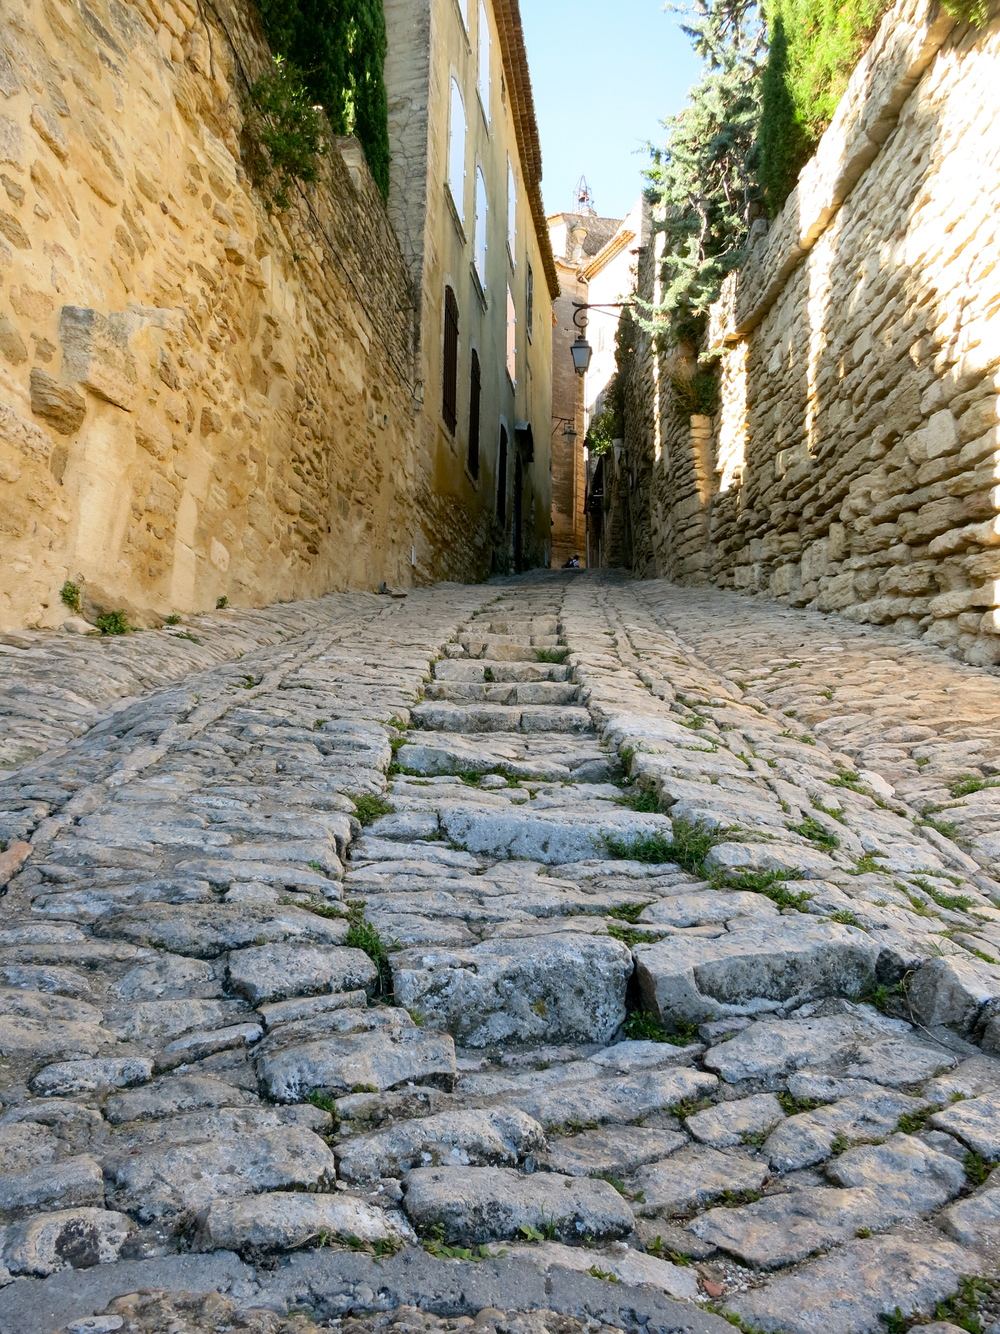 Thankfully at least one medieval engineer thought to put steps in their hilly streets. © 2014 Gail Jessen